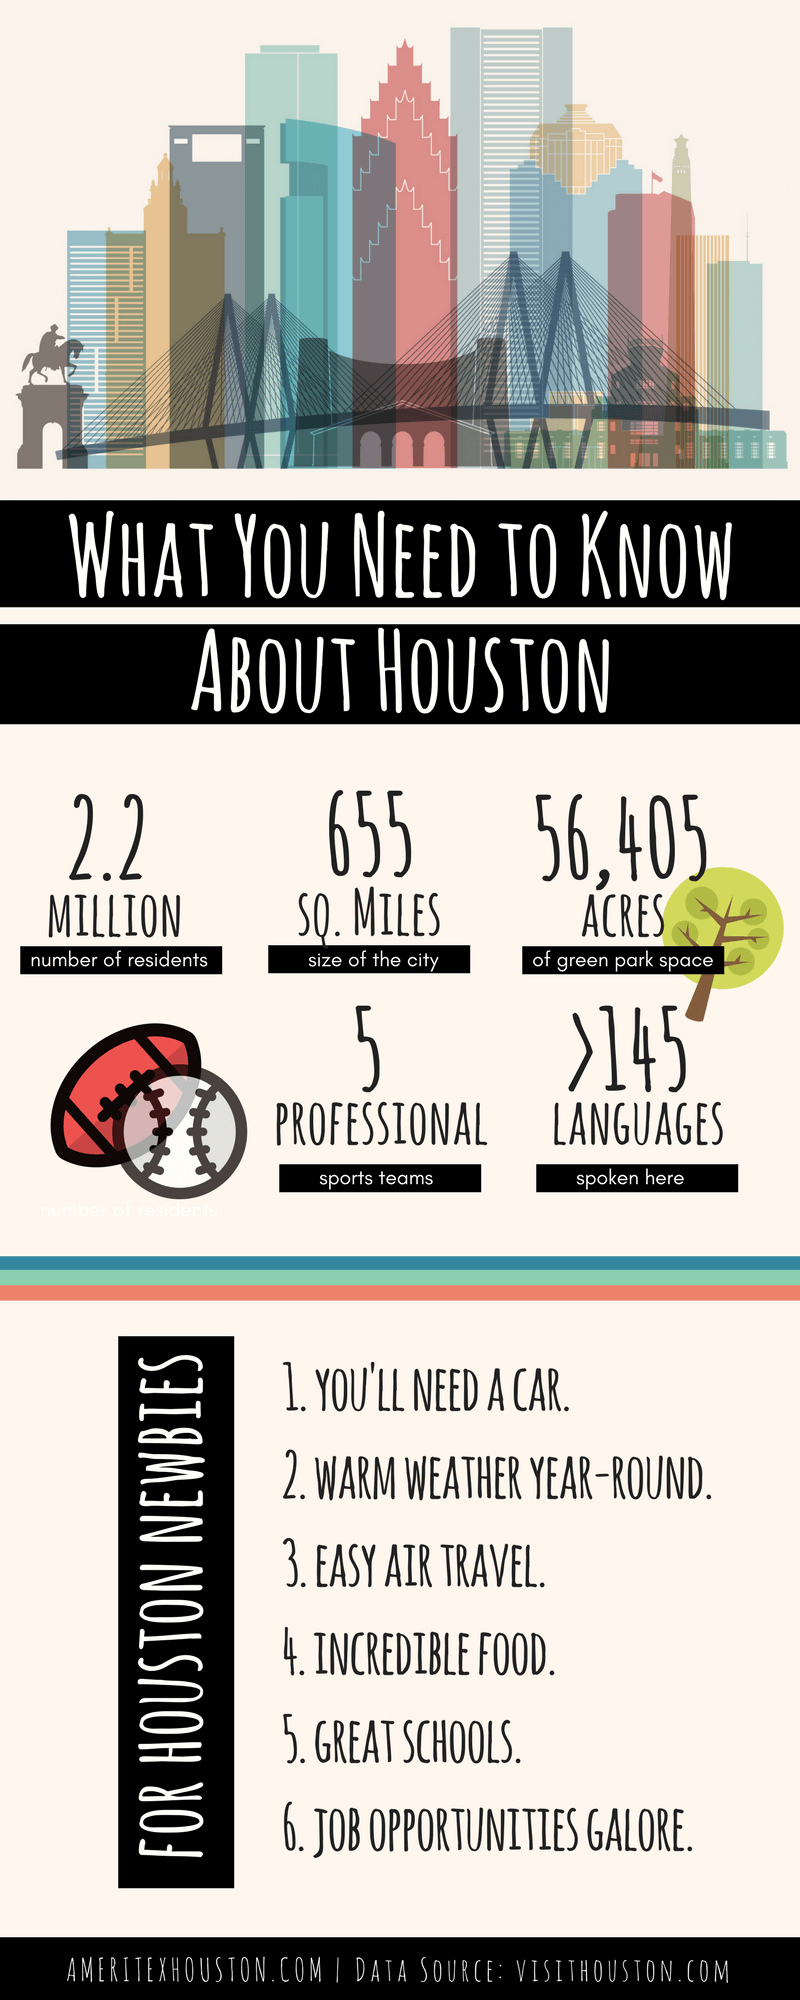 houston fun facts infographic